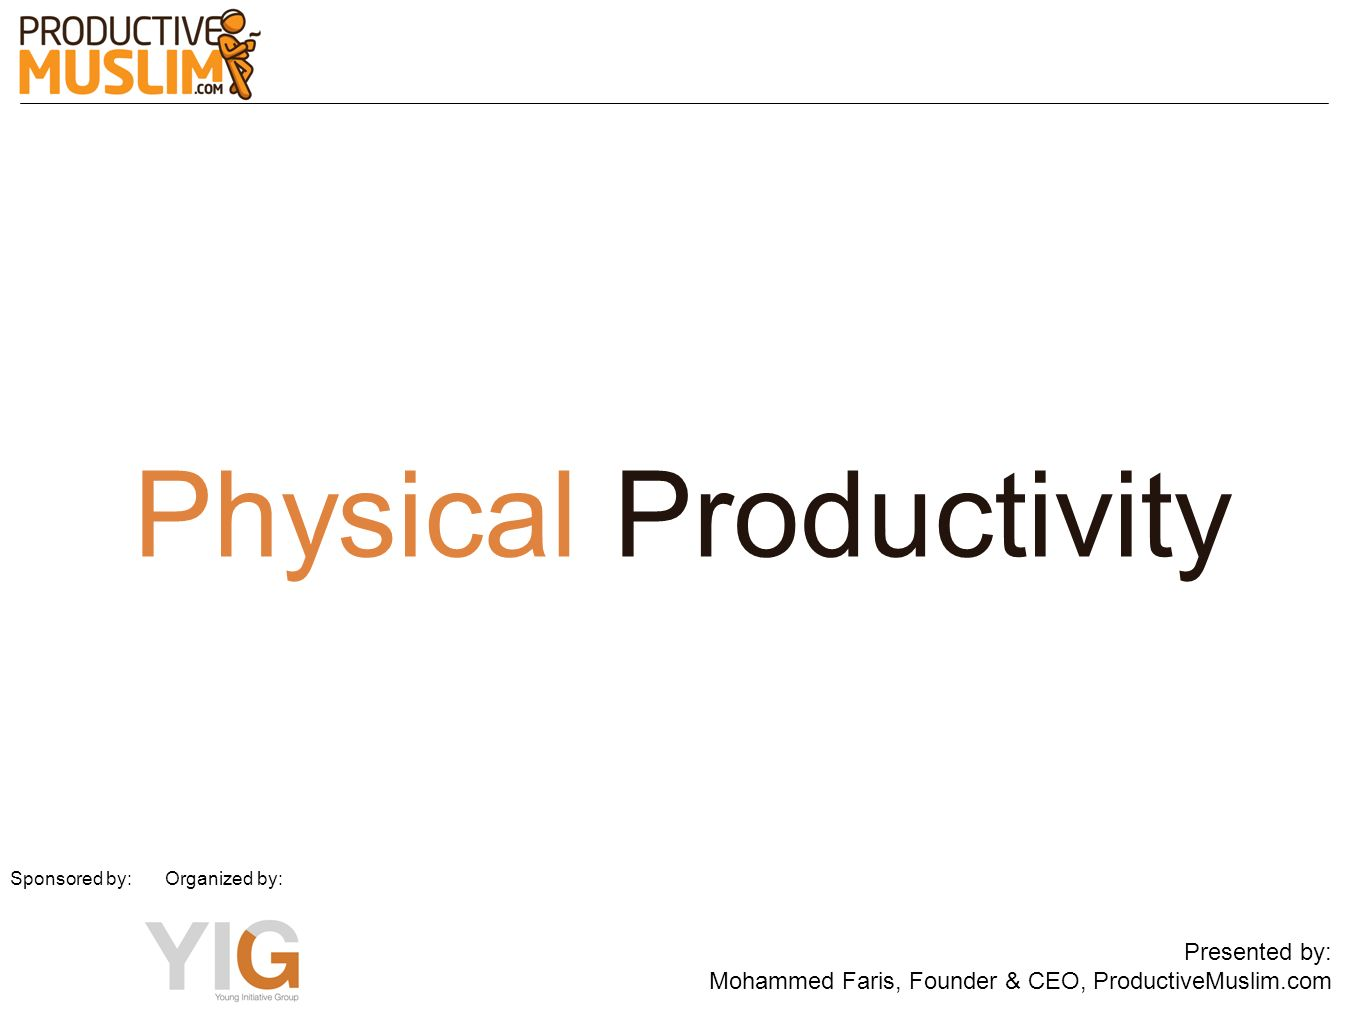 Physical Productivity